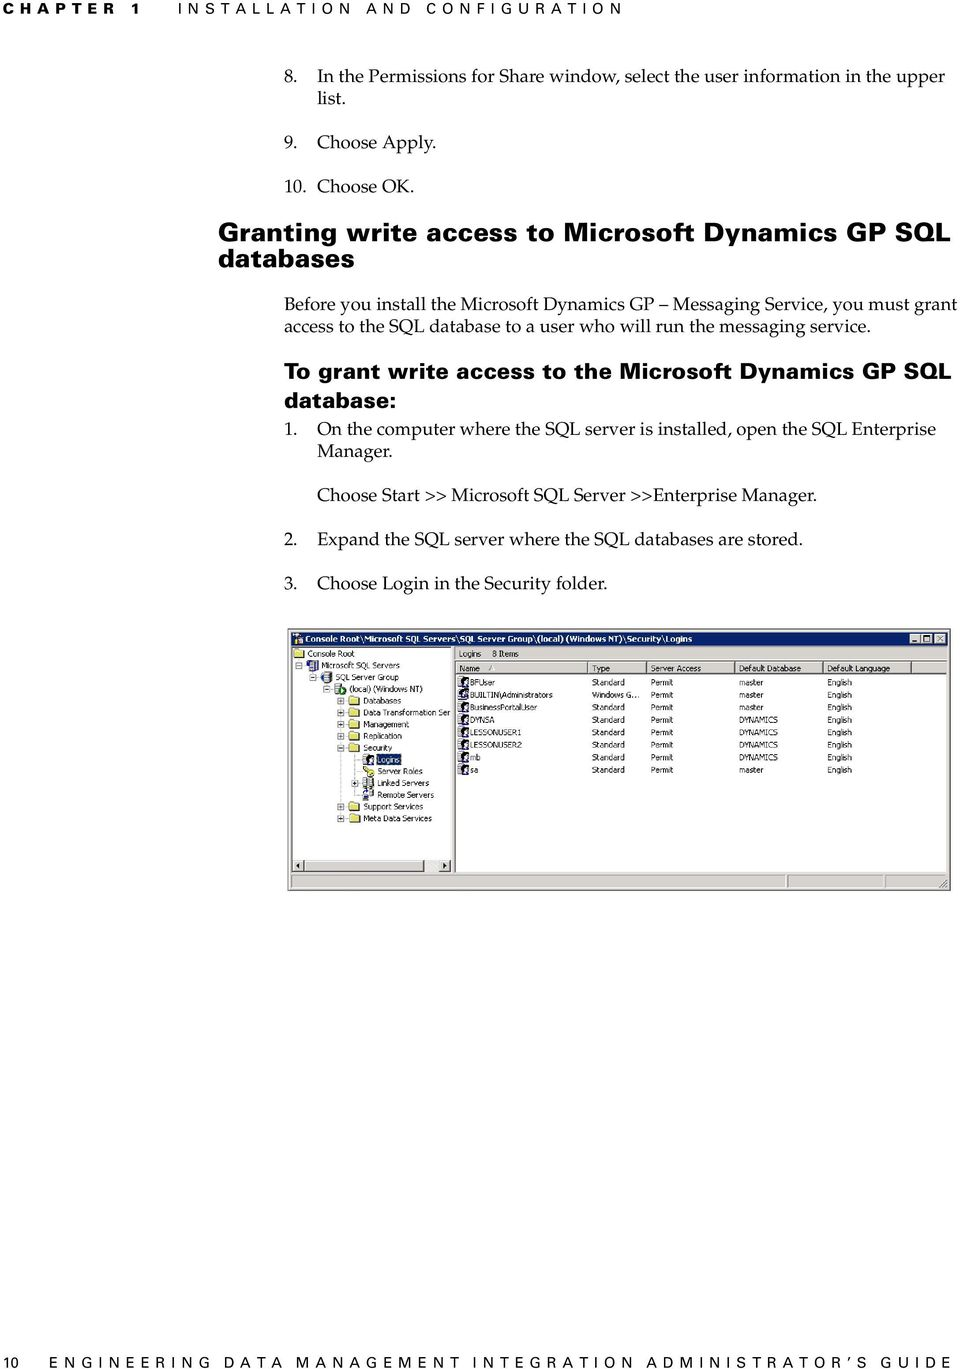 run the messaging service. To grant write access to the Microsoft Dynamics GP SQL database: 1. On the computer where the SQL server is installed, open the SQL Enterprise Manager.